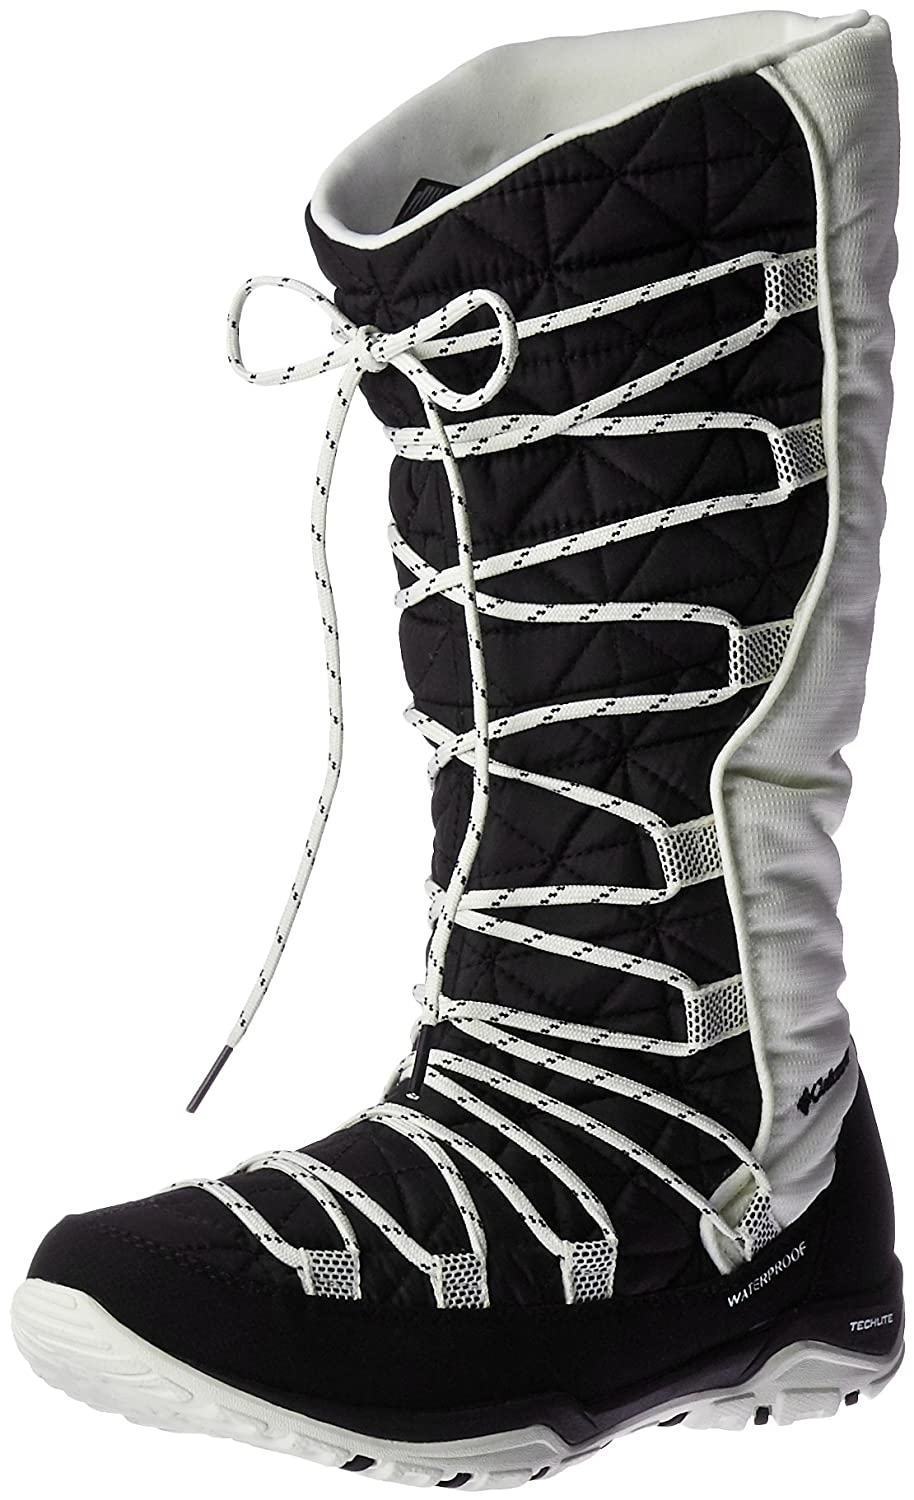 Columbia Women's Loveland Omni-Heat Snow Boot B0183O1WT2 6.5 B(M) US|Black/Sea Salt